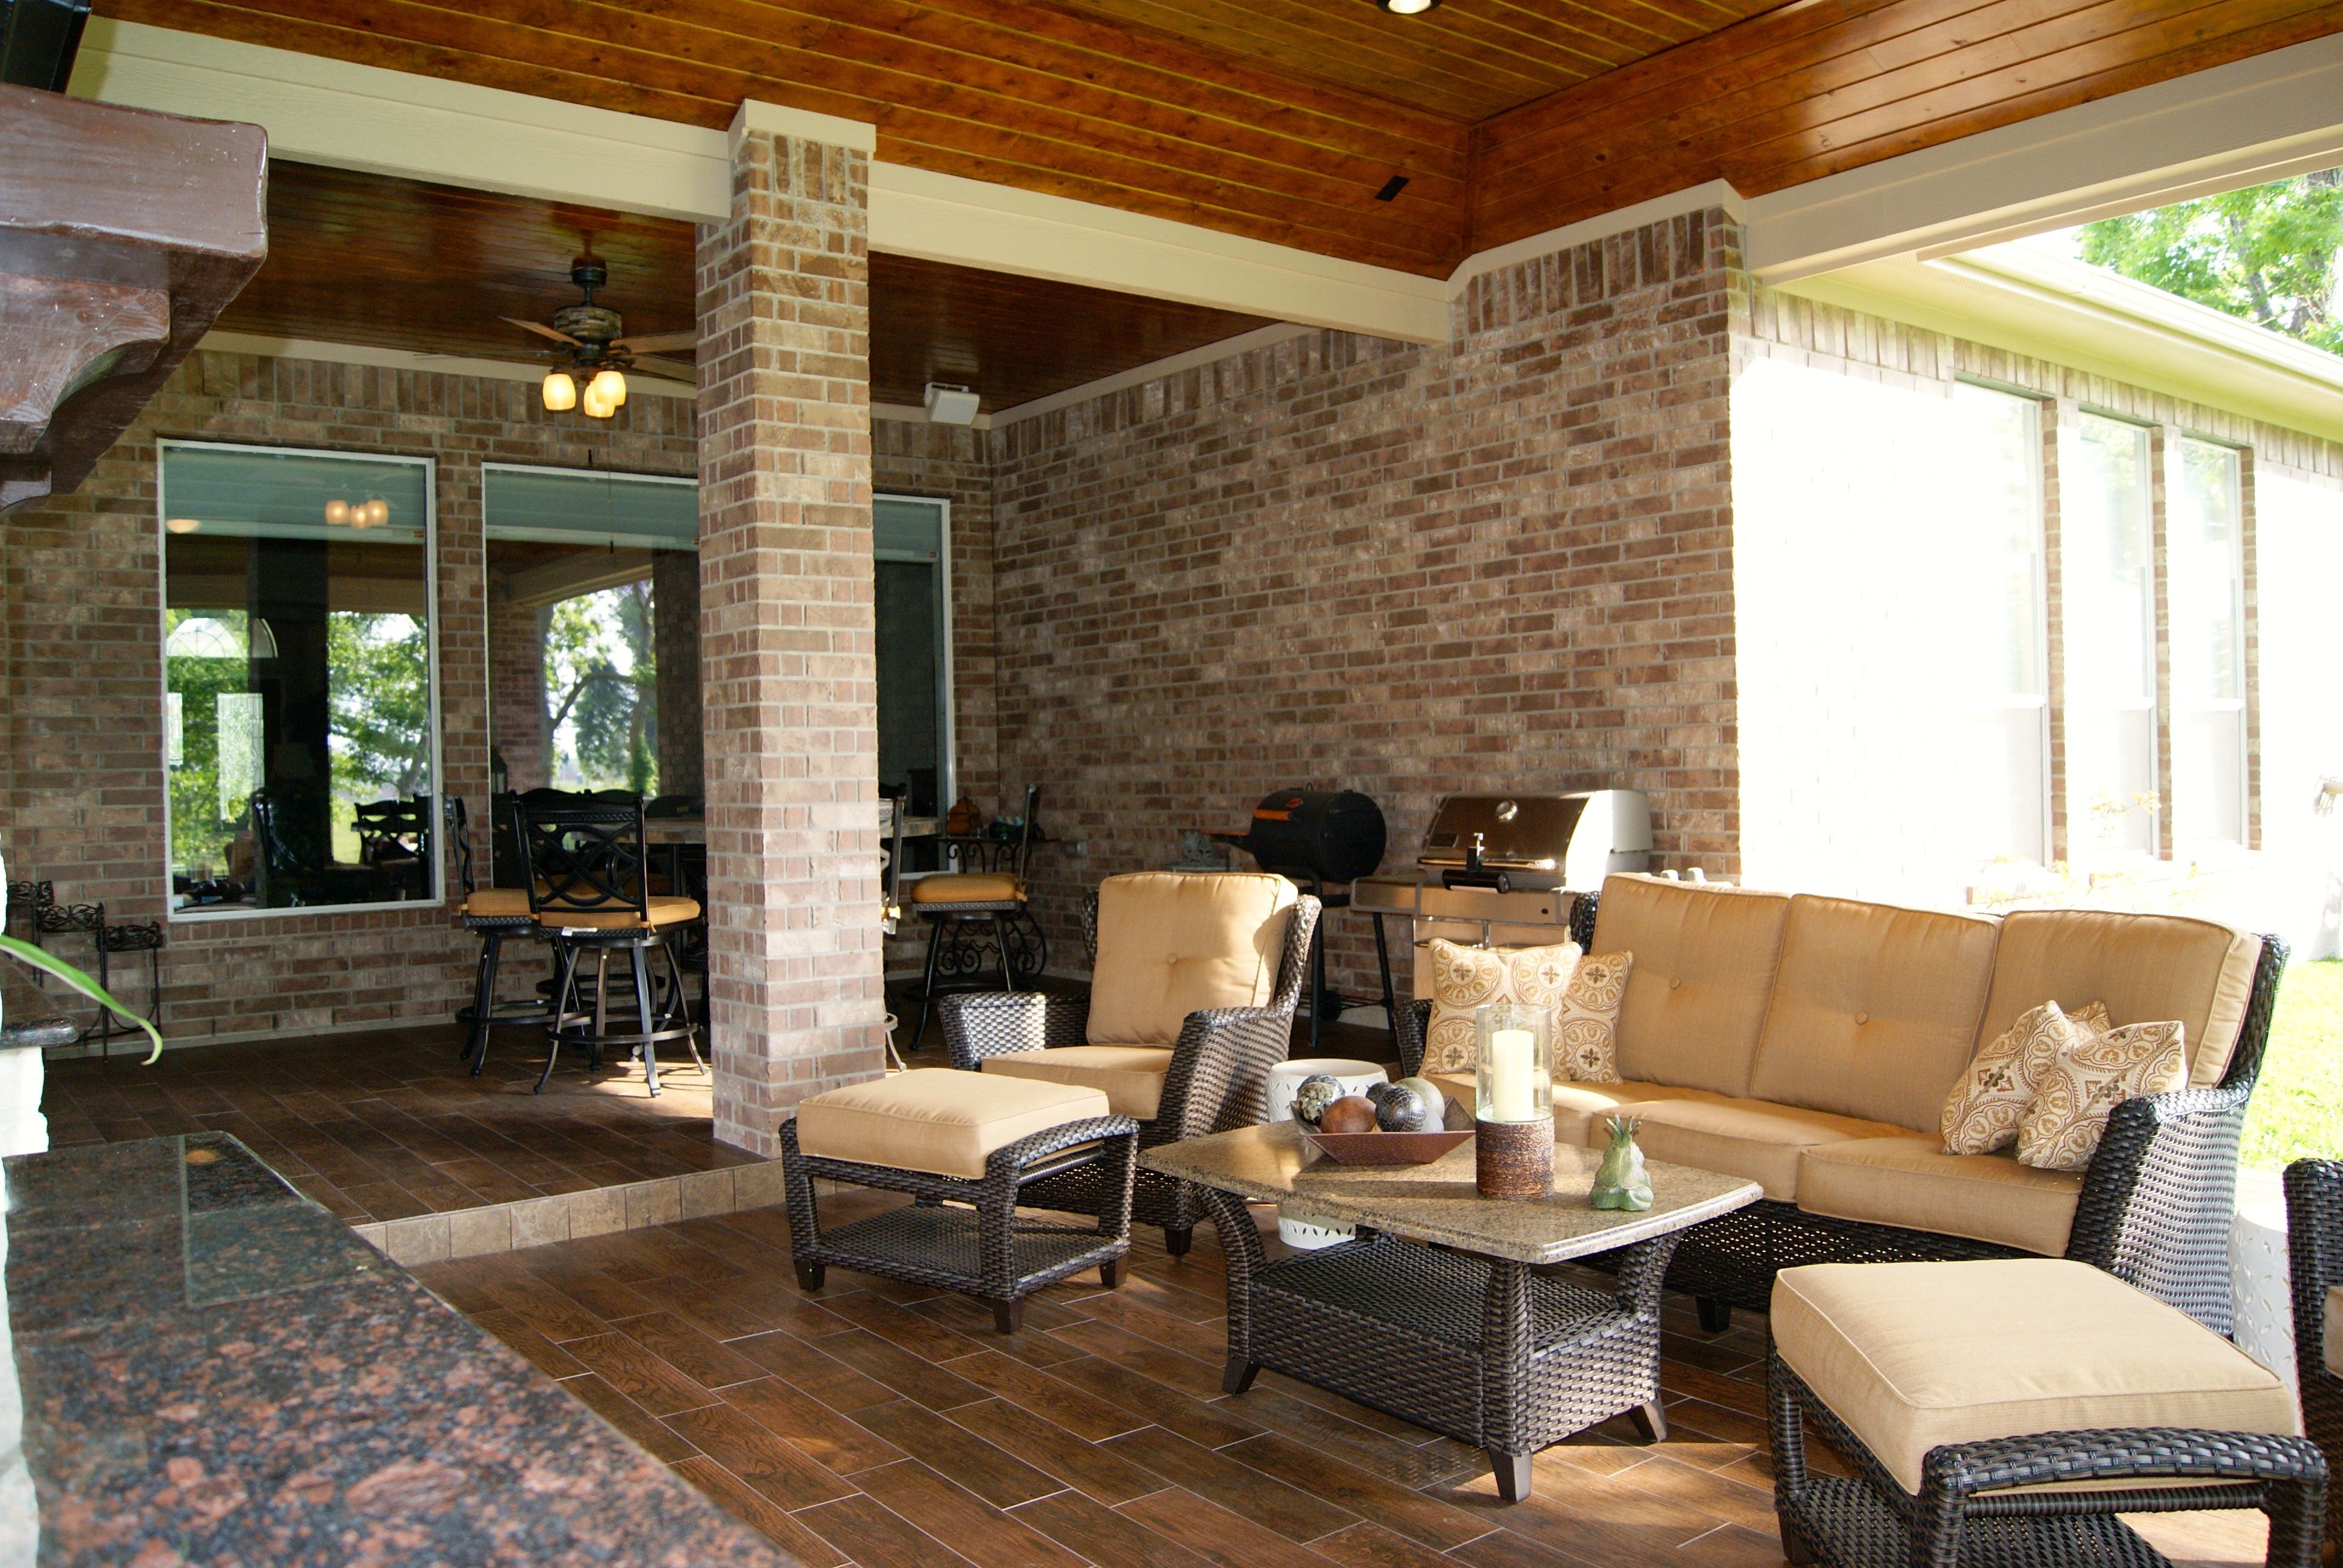 Outdoor living room with wood plank porcelain tile | Patio ... on Outdoor Living Room Set id=61836